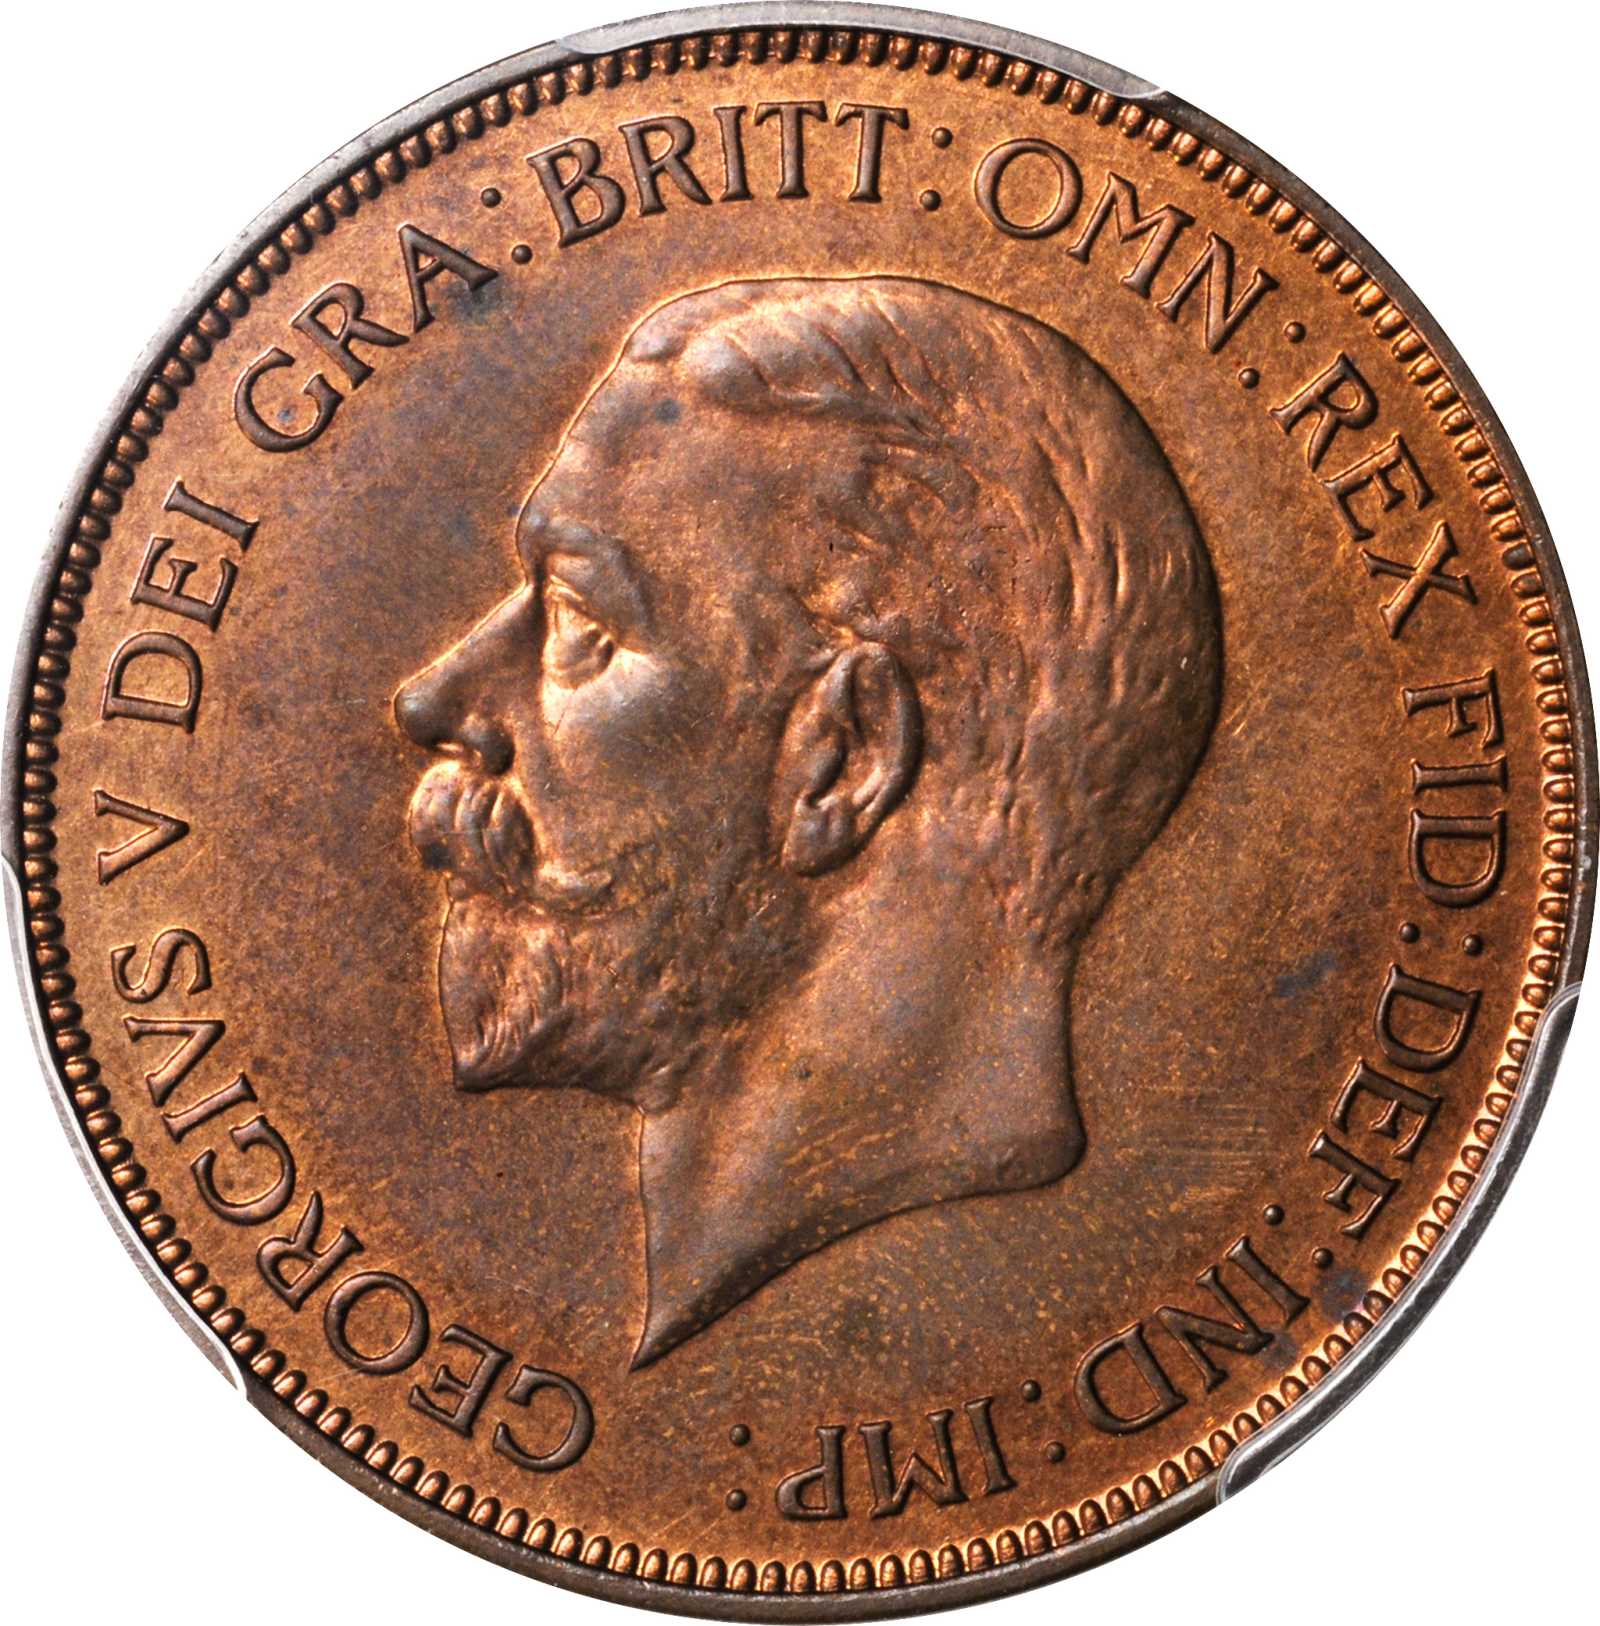 Penny (Pre-decimal): Photo Great Britain 1936 penny